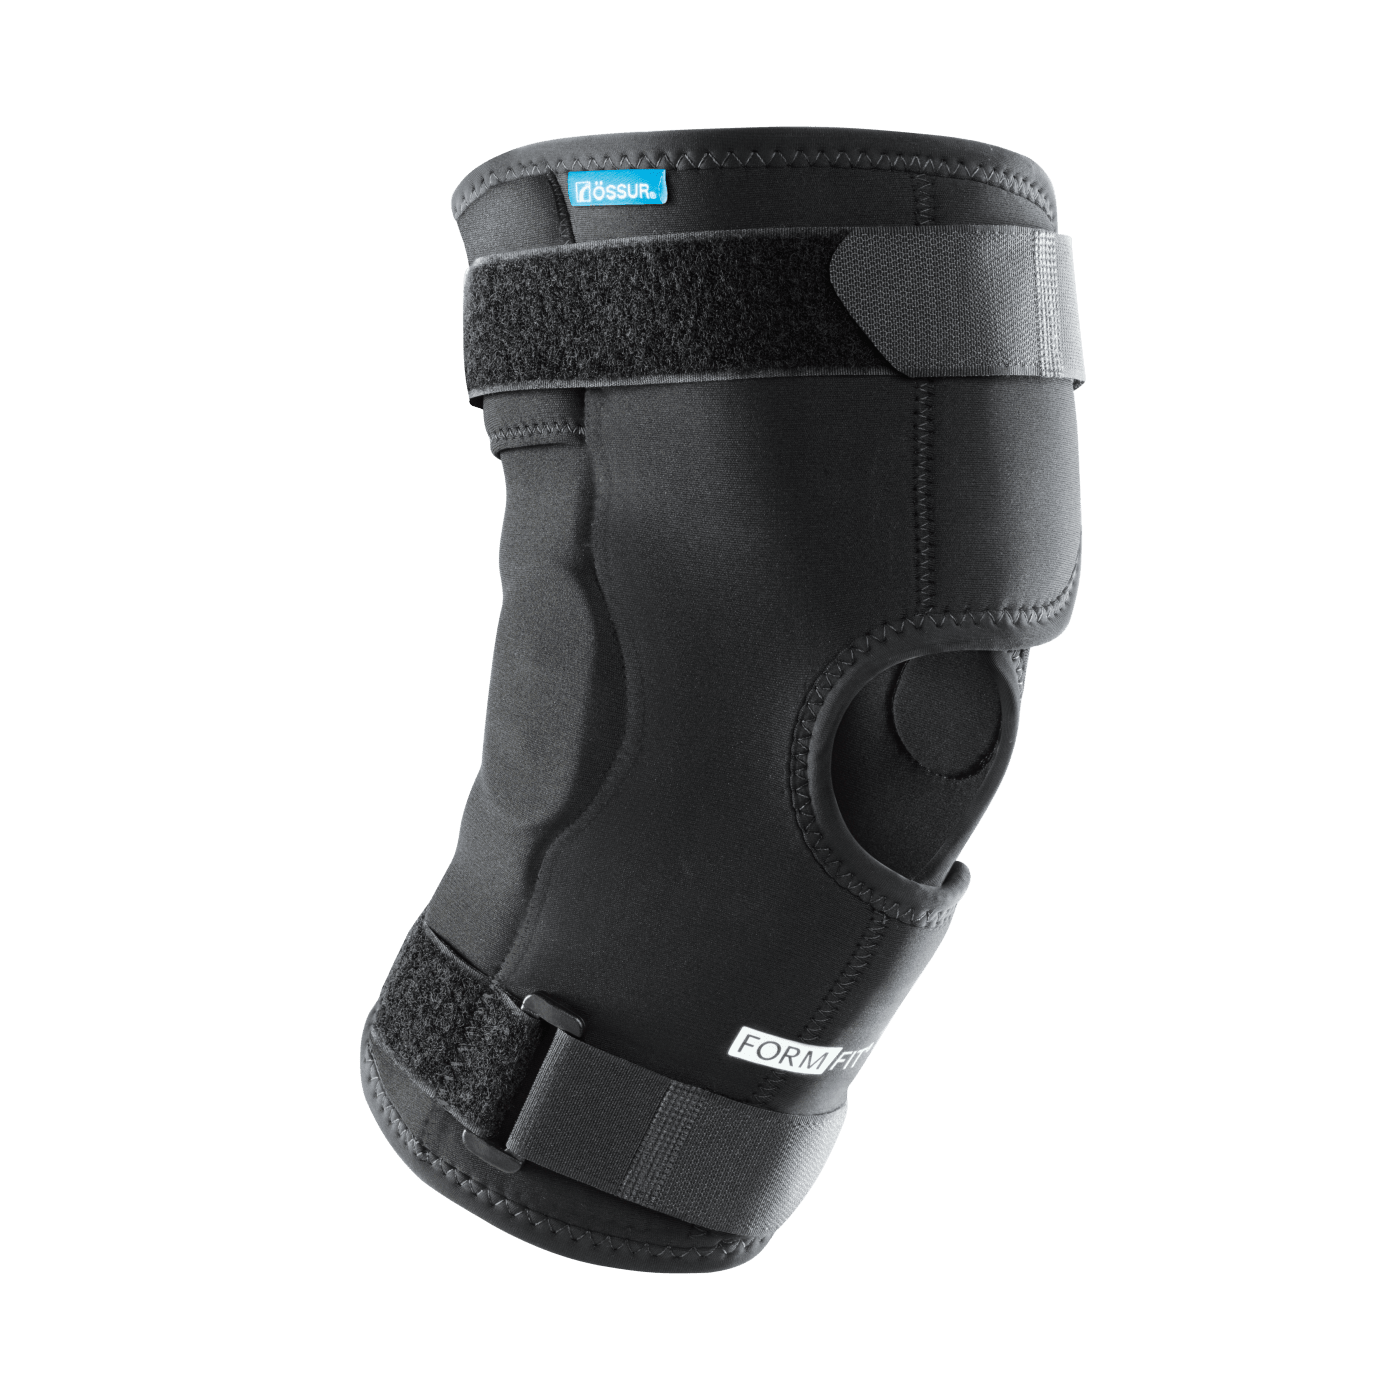 Ossur Neoprene Wraparound Hinged Knee Support.